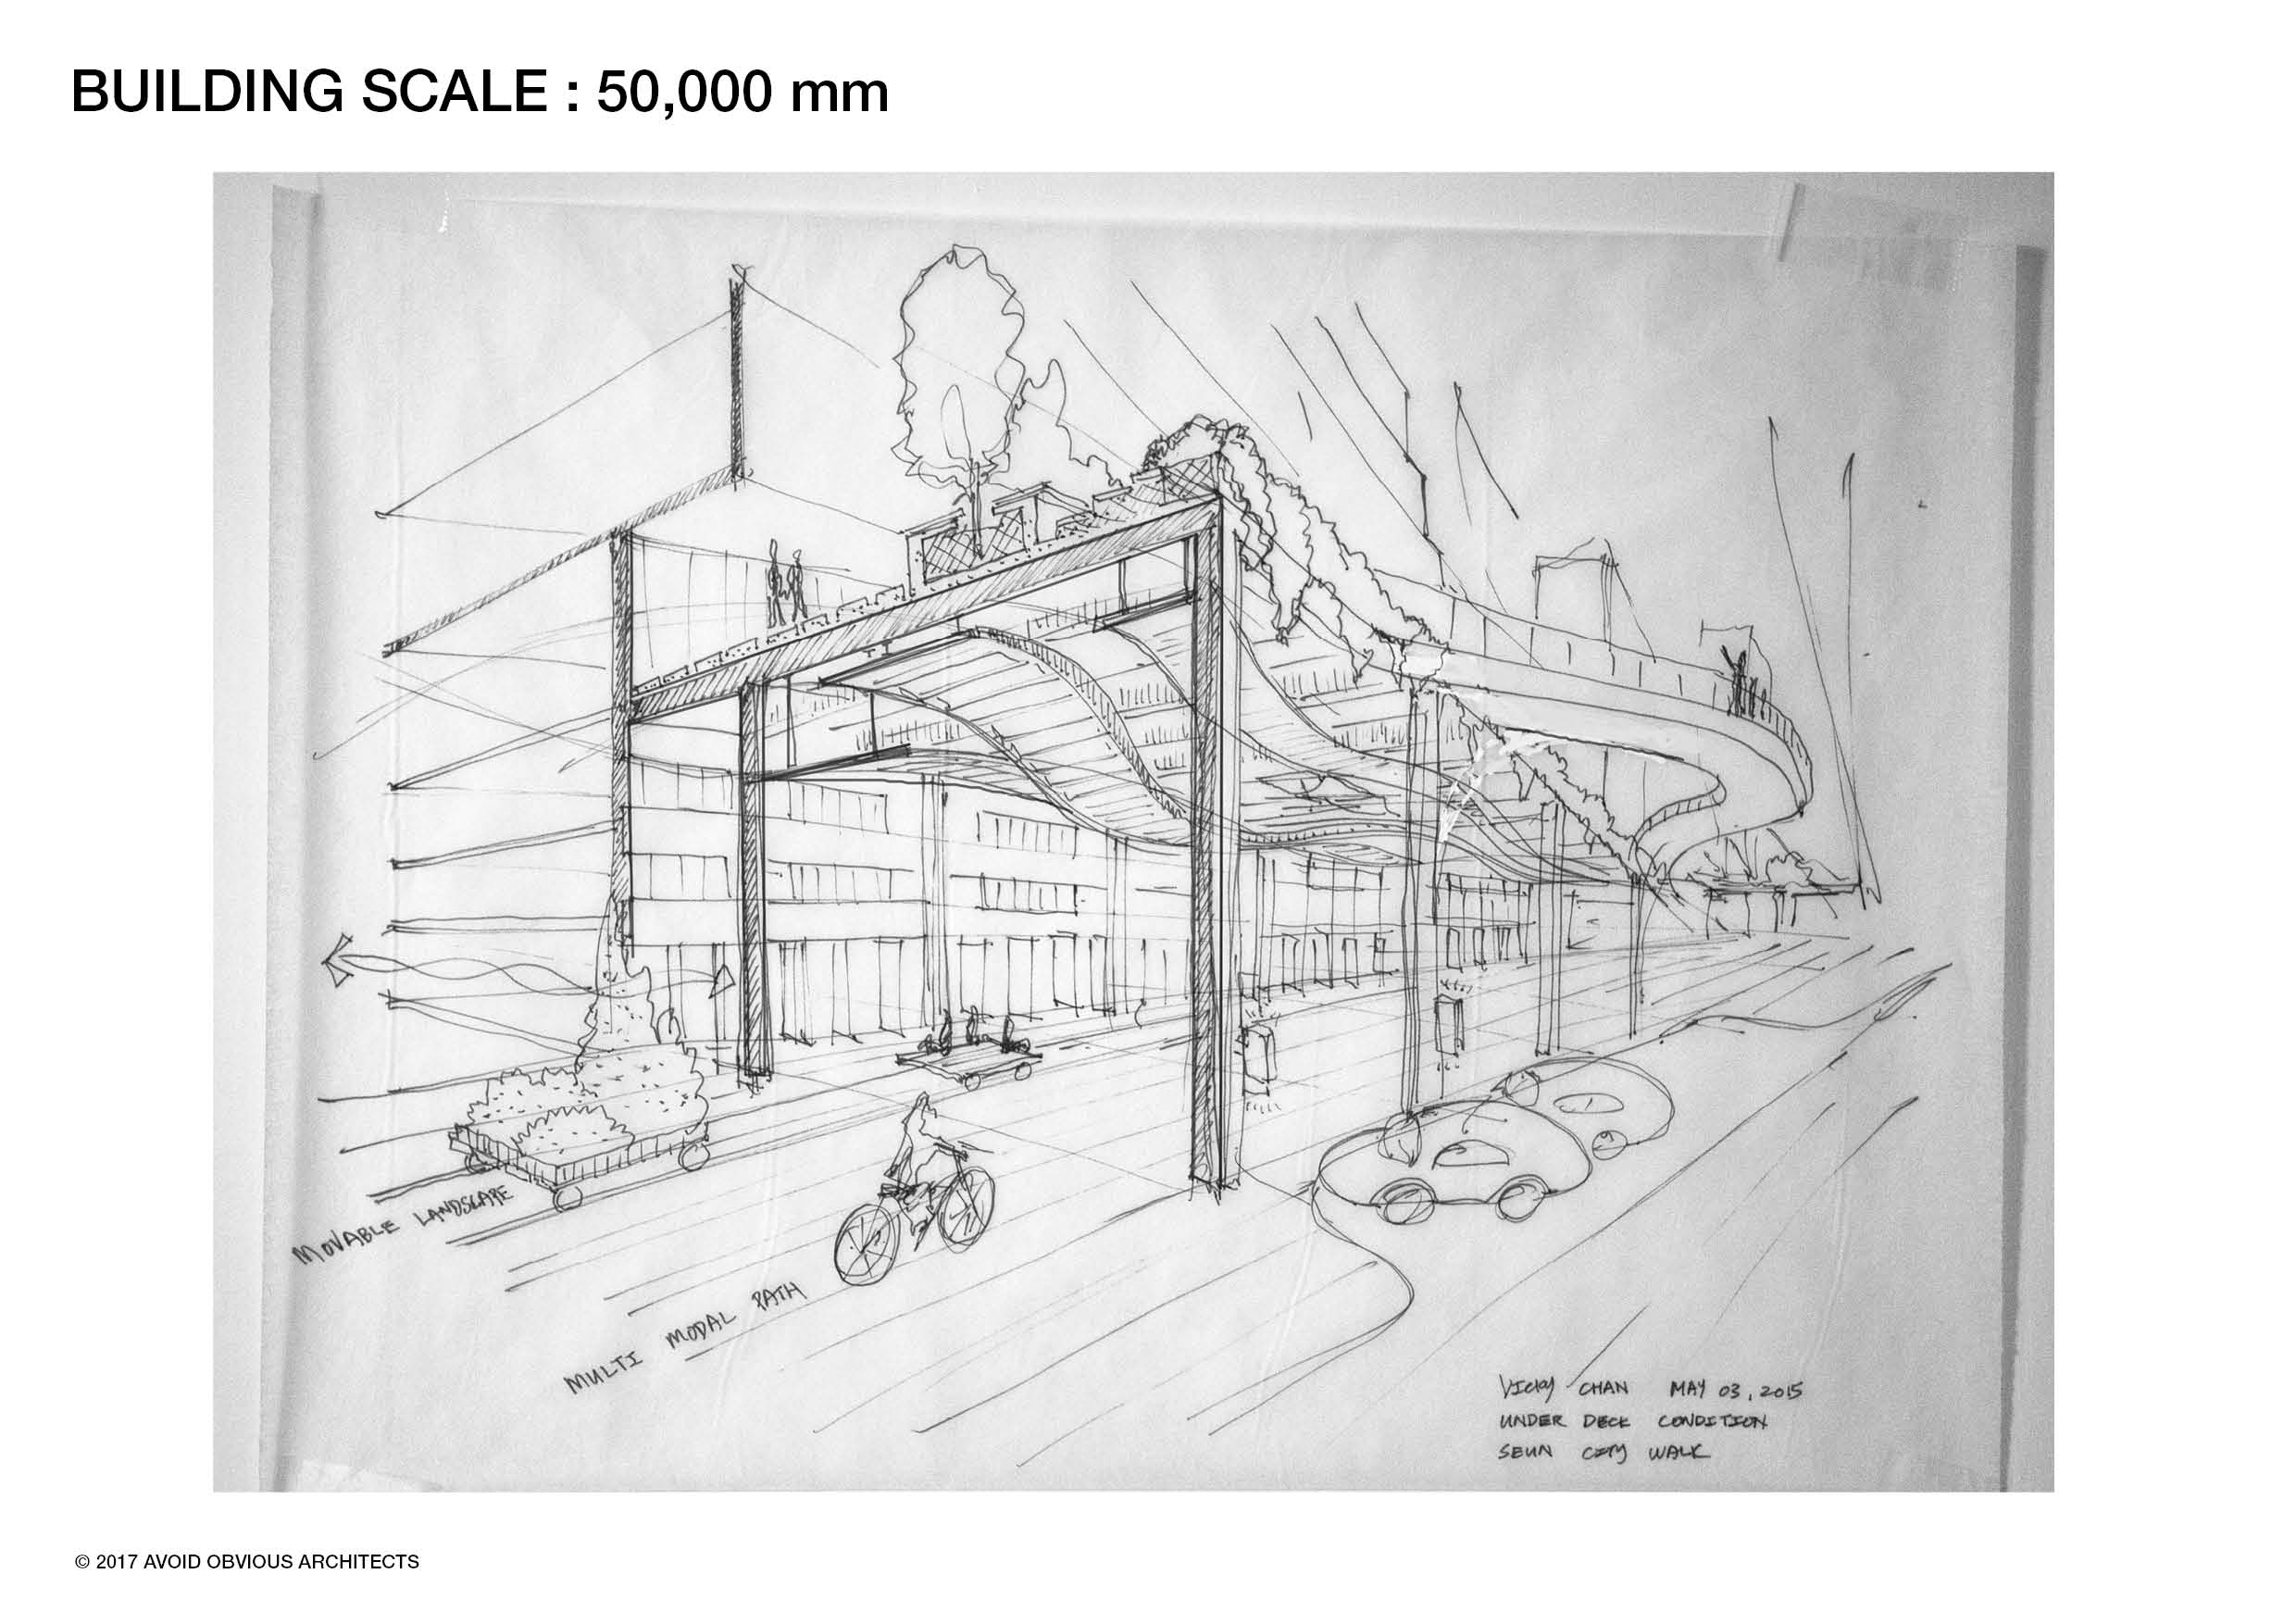 The Value Of Hand Drawings Avoid Obvious Architects